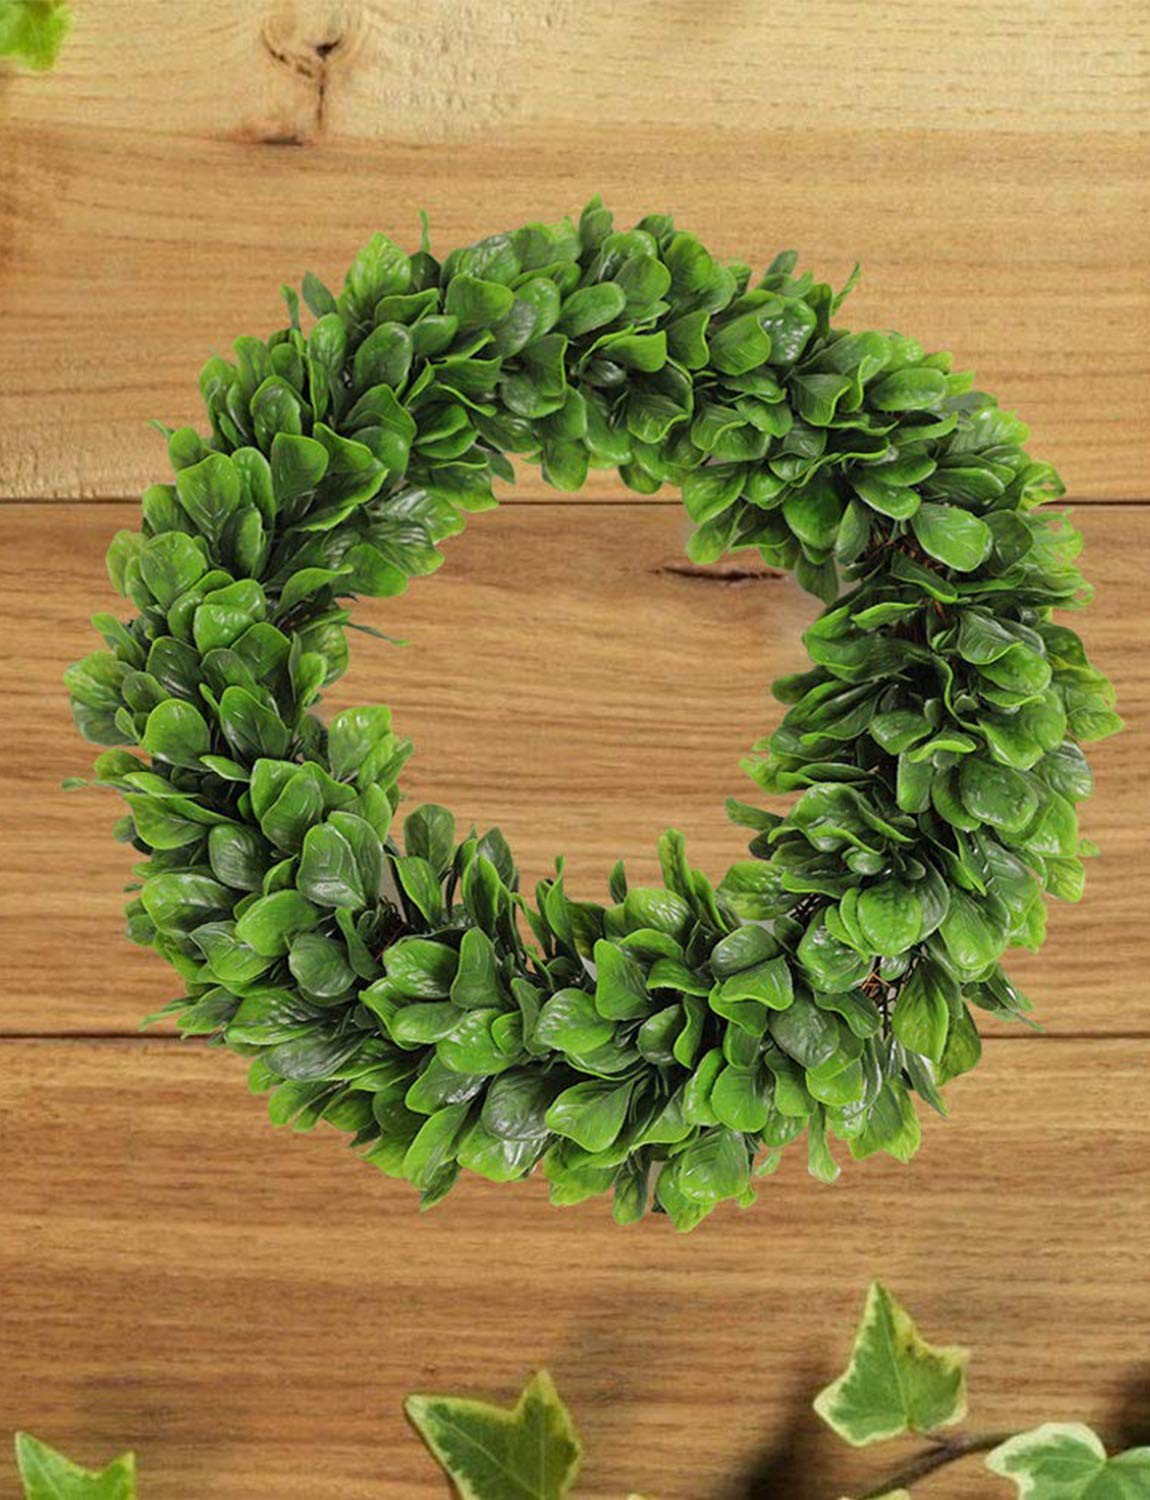 15 Inch Fern Round Garland for Door Wall Window Party D/écor momoplant Artificial Green Leaf Wreath